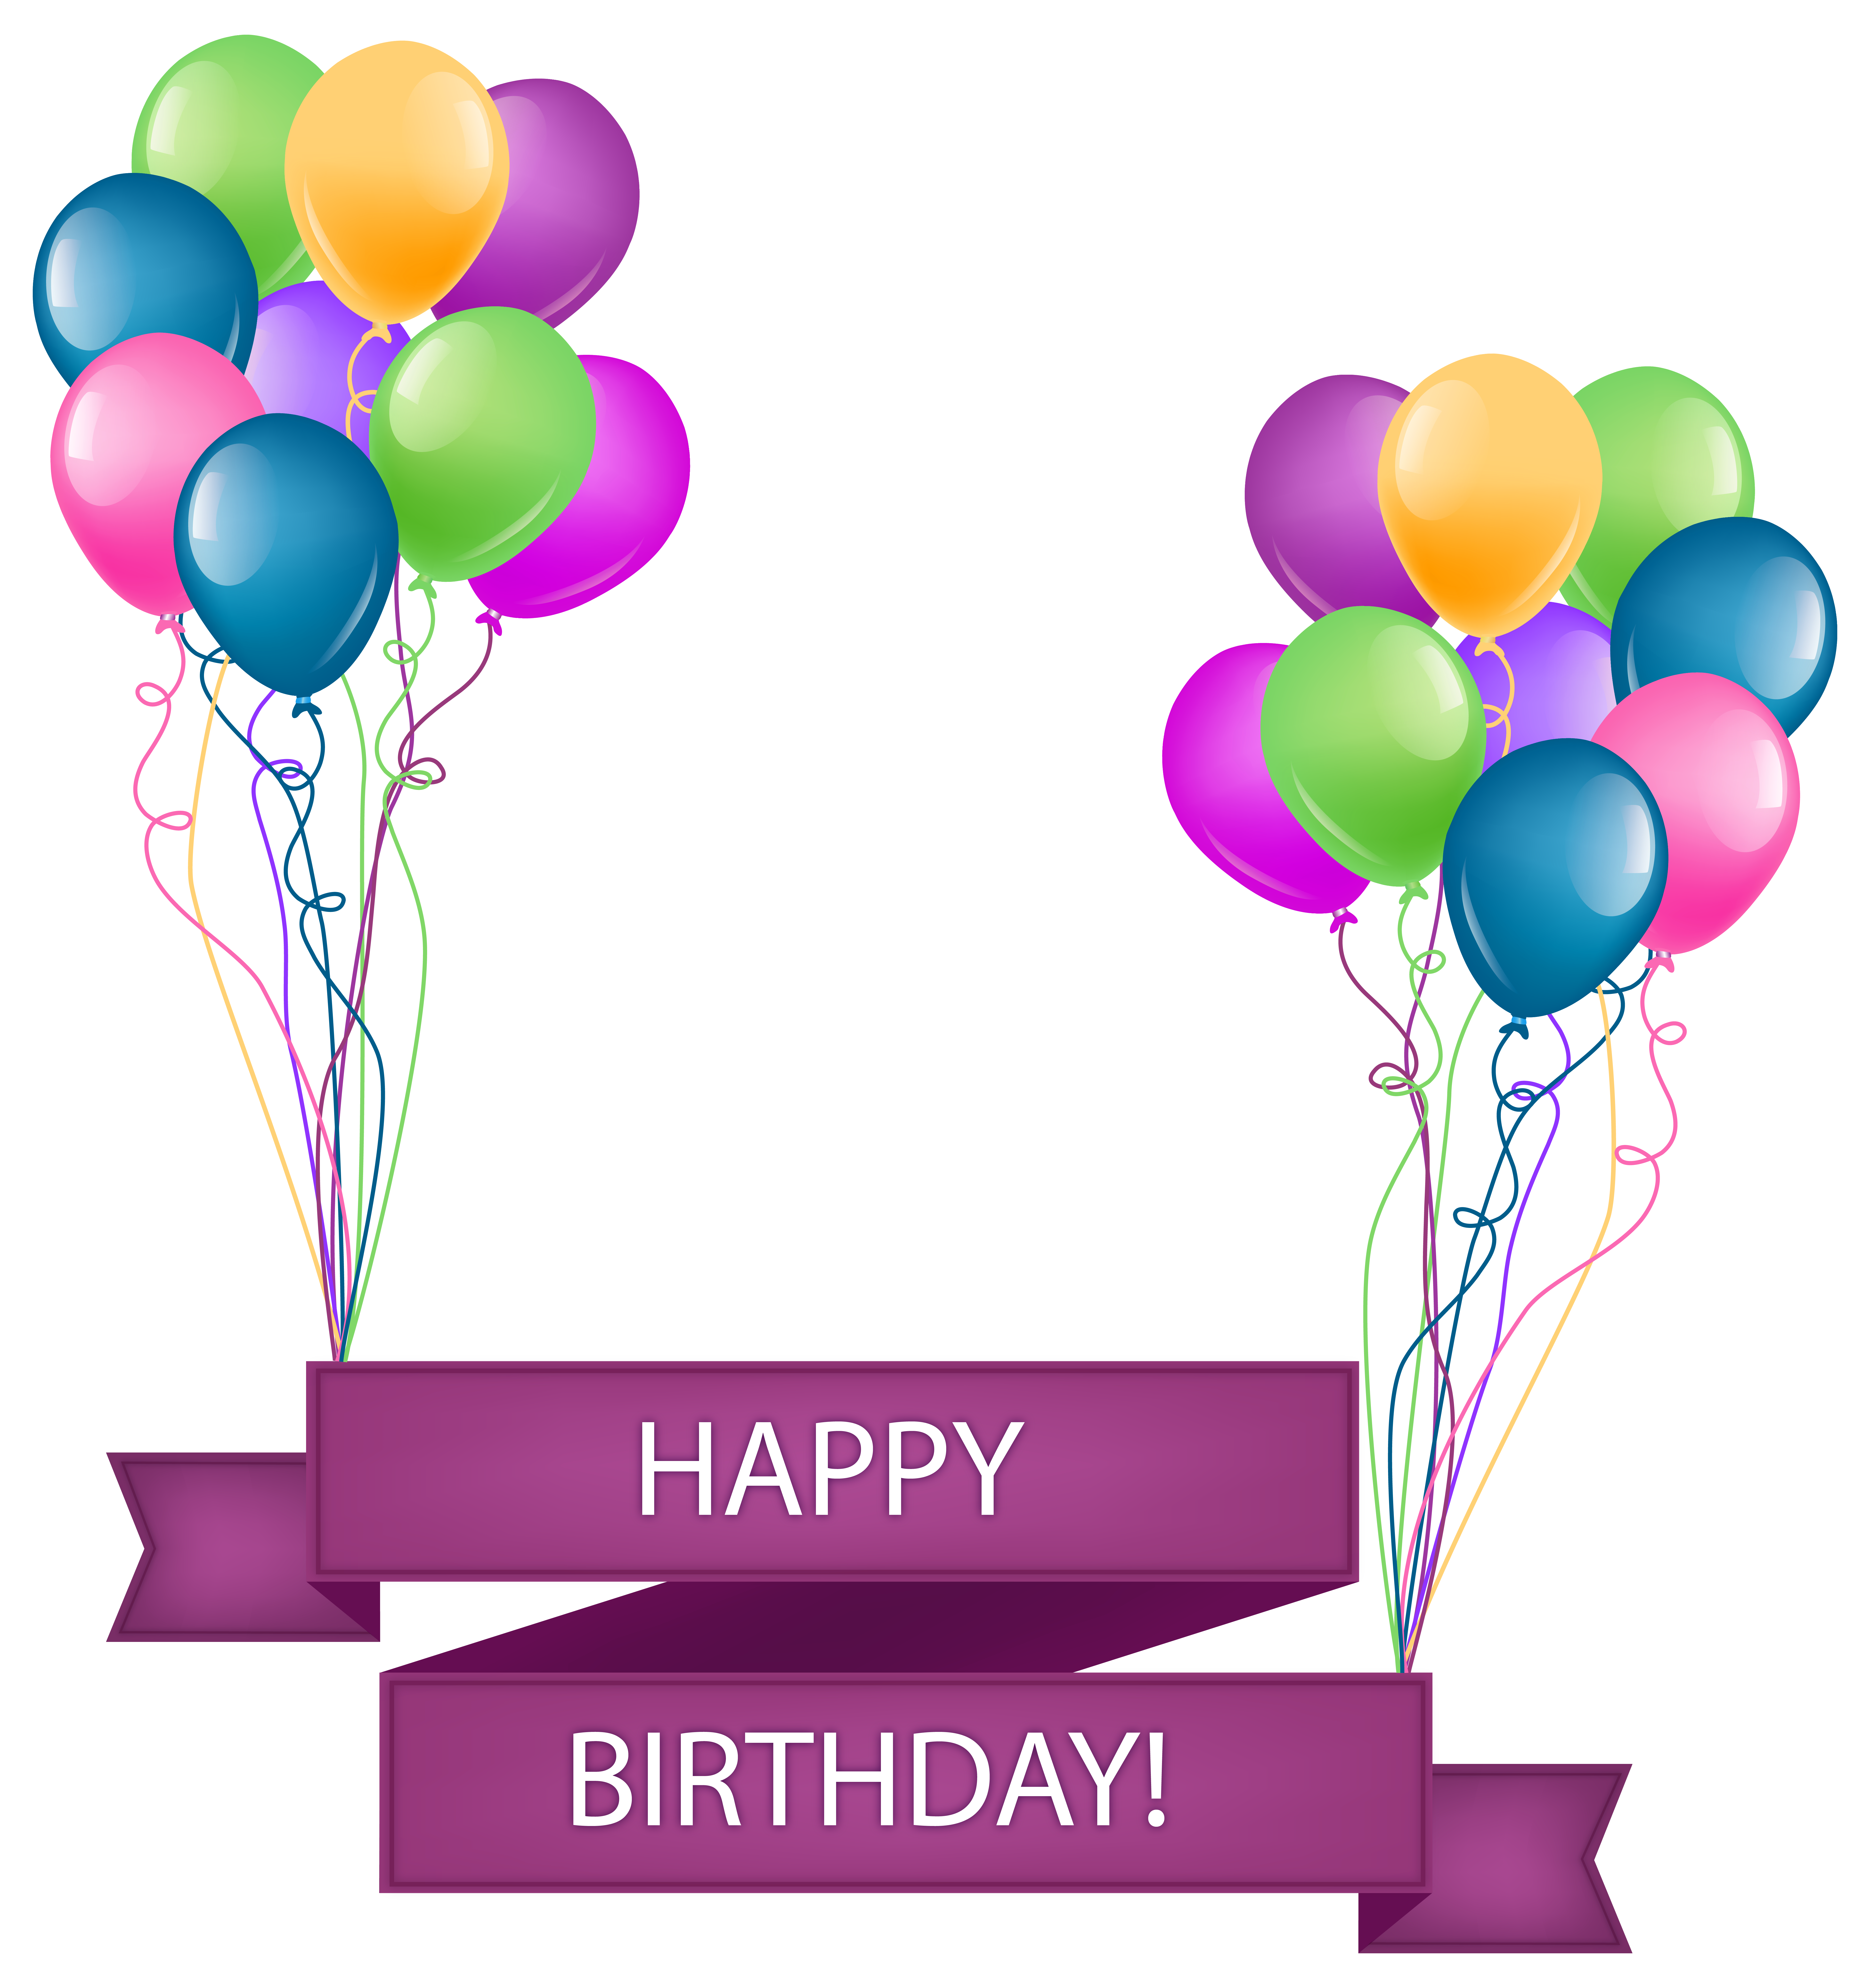 jpg stock Happy Birthday Banner with Balloons Transparent PNG Clip Art Image